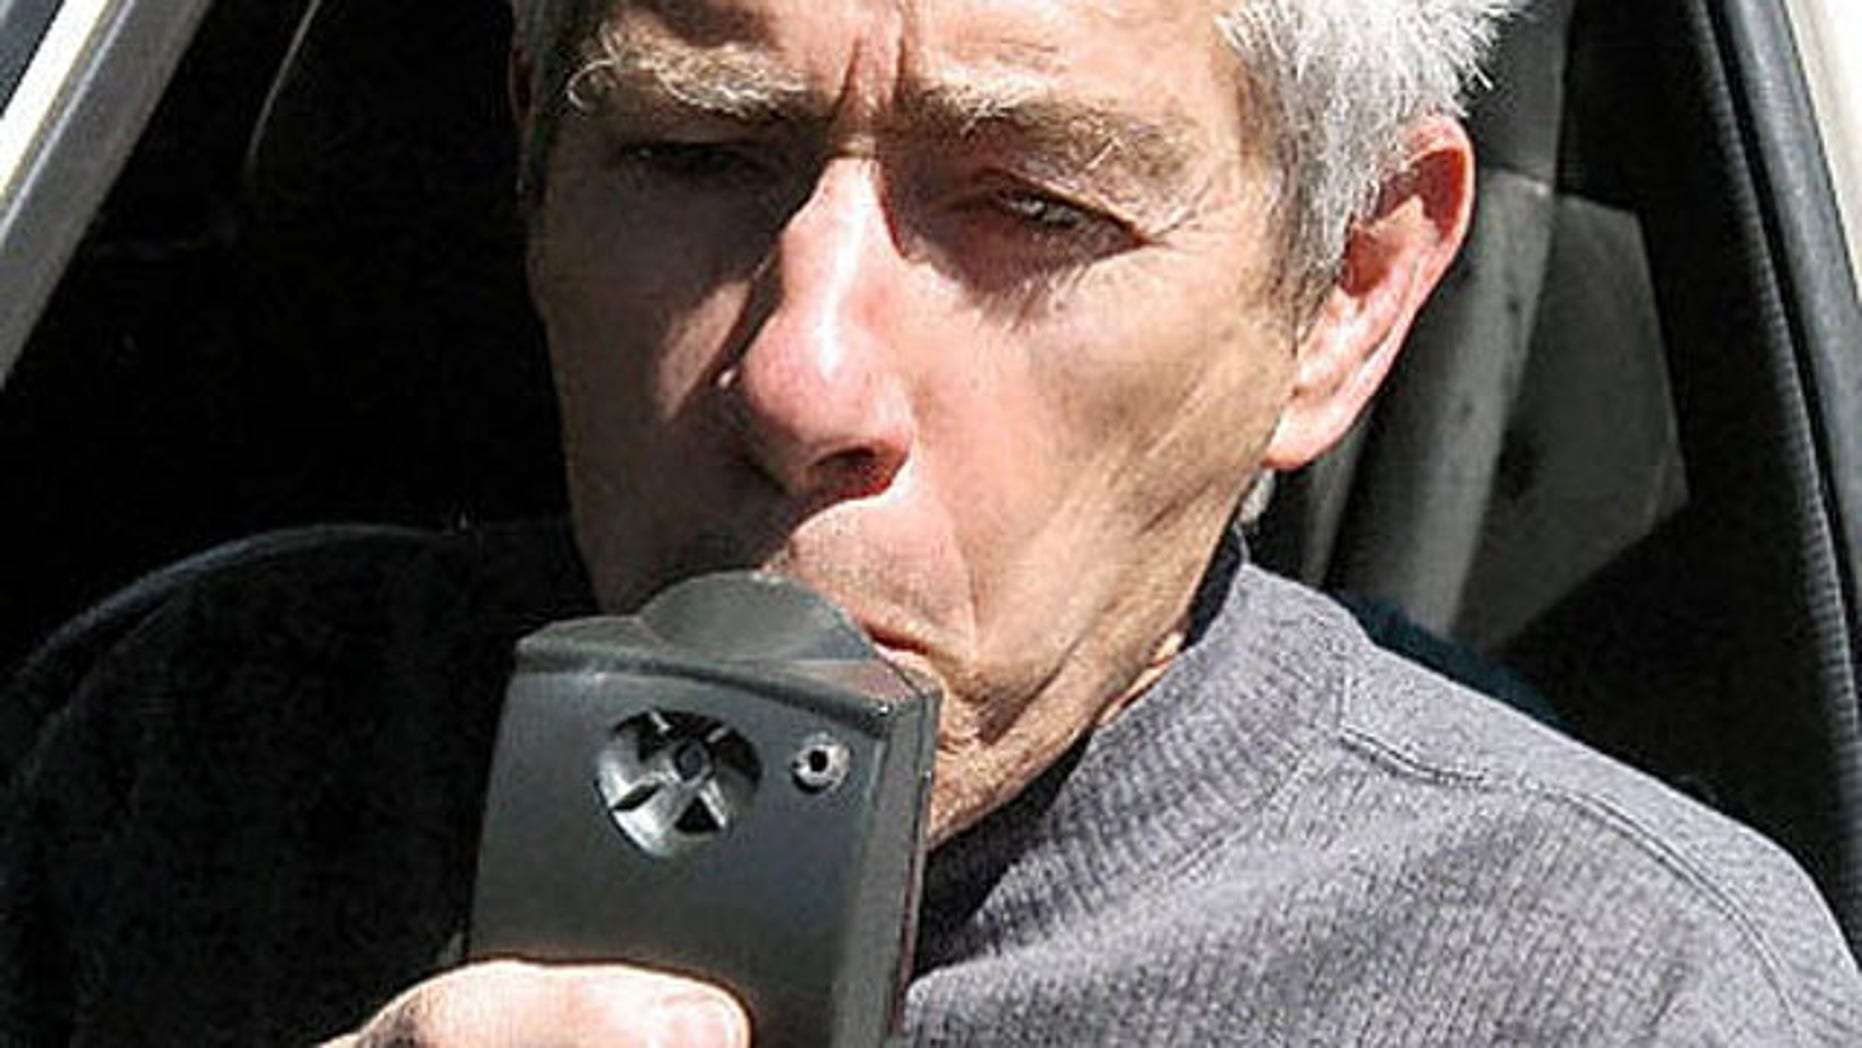 Richard Roth, a lobbyist for the ignition interlock device for drunk drivers, demonstrates the device in Santa Fe, N.M., in 2005. New Mexico saw a significant drop in repeat DWI offfenders after introducing the device.